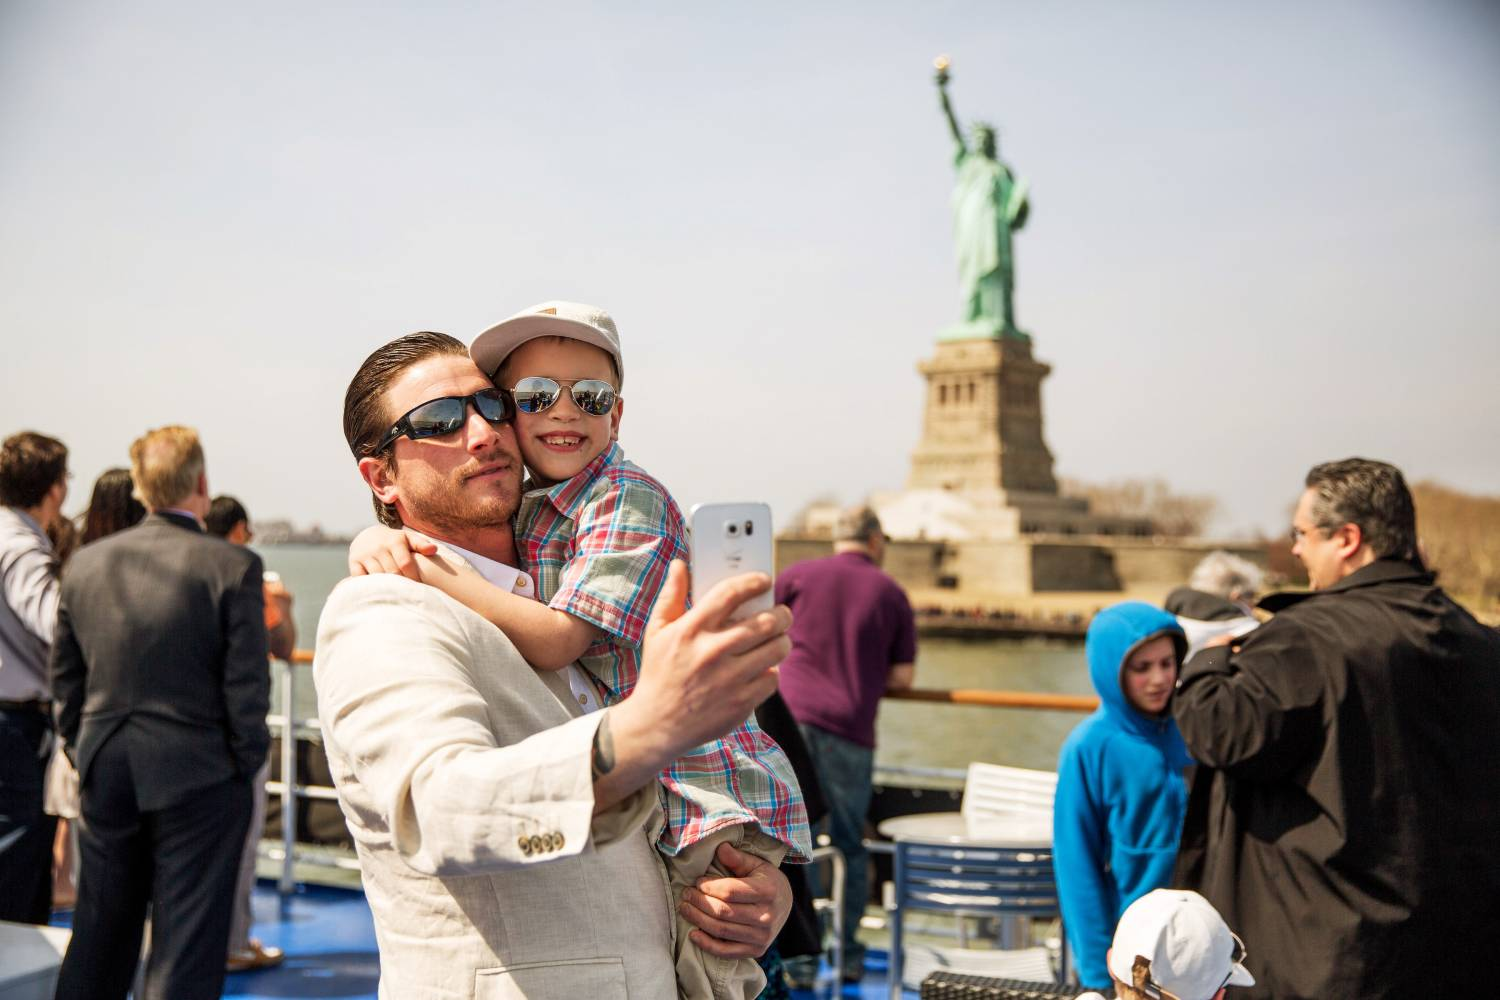 Patrons taking a selfie with statue of liberty in the background on a Spirit of New York boat